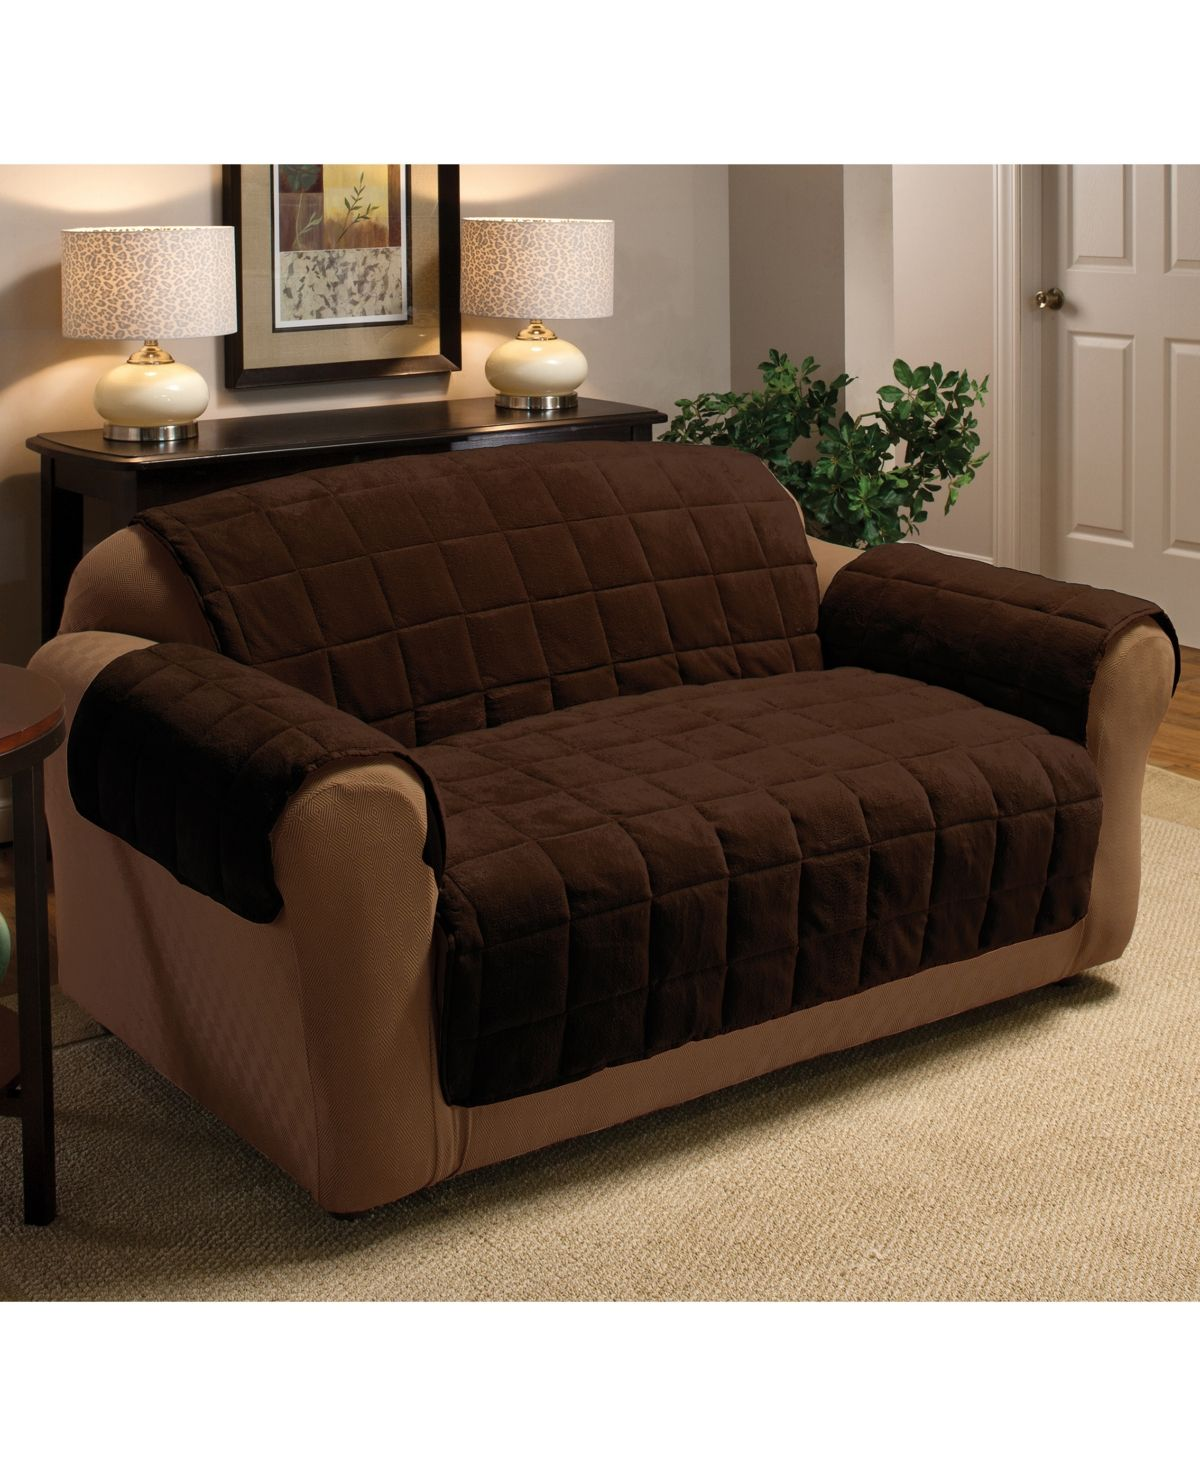 P Kaufmann Home Plush Sofa Protector Reviews Slipcovers Home Decor Macy S Loveseat Slipcovers Furniture Slipcovers For Chairs